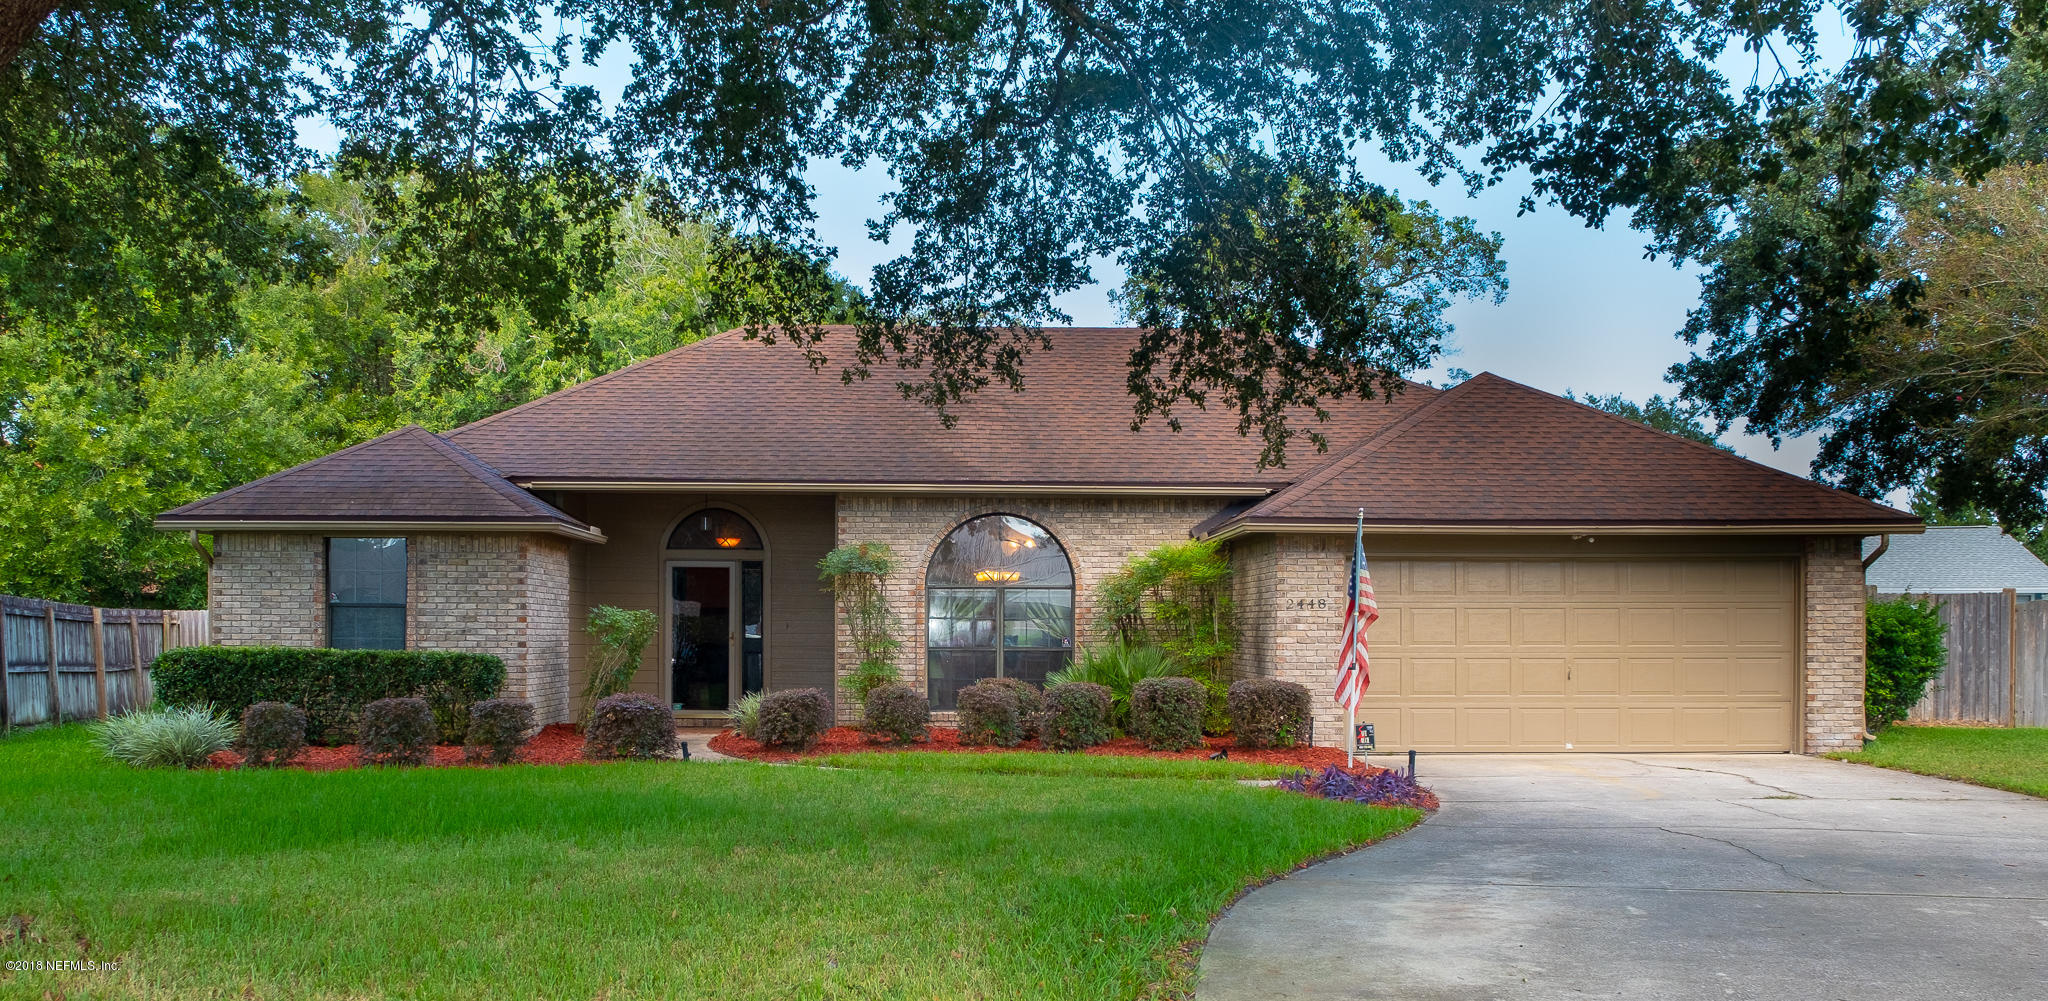 2448 LARCHWOOD, ORANGE PARK, FLORIDA 32065, 3 Bedrooms Bedrooms, ,2 BathroomsBathrooms,Residential - single family,For sale,LARCHWOOD,960087